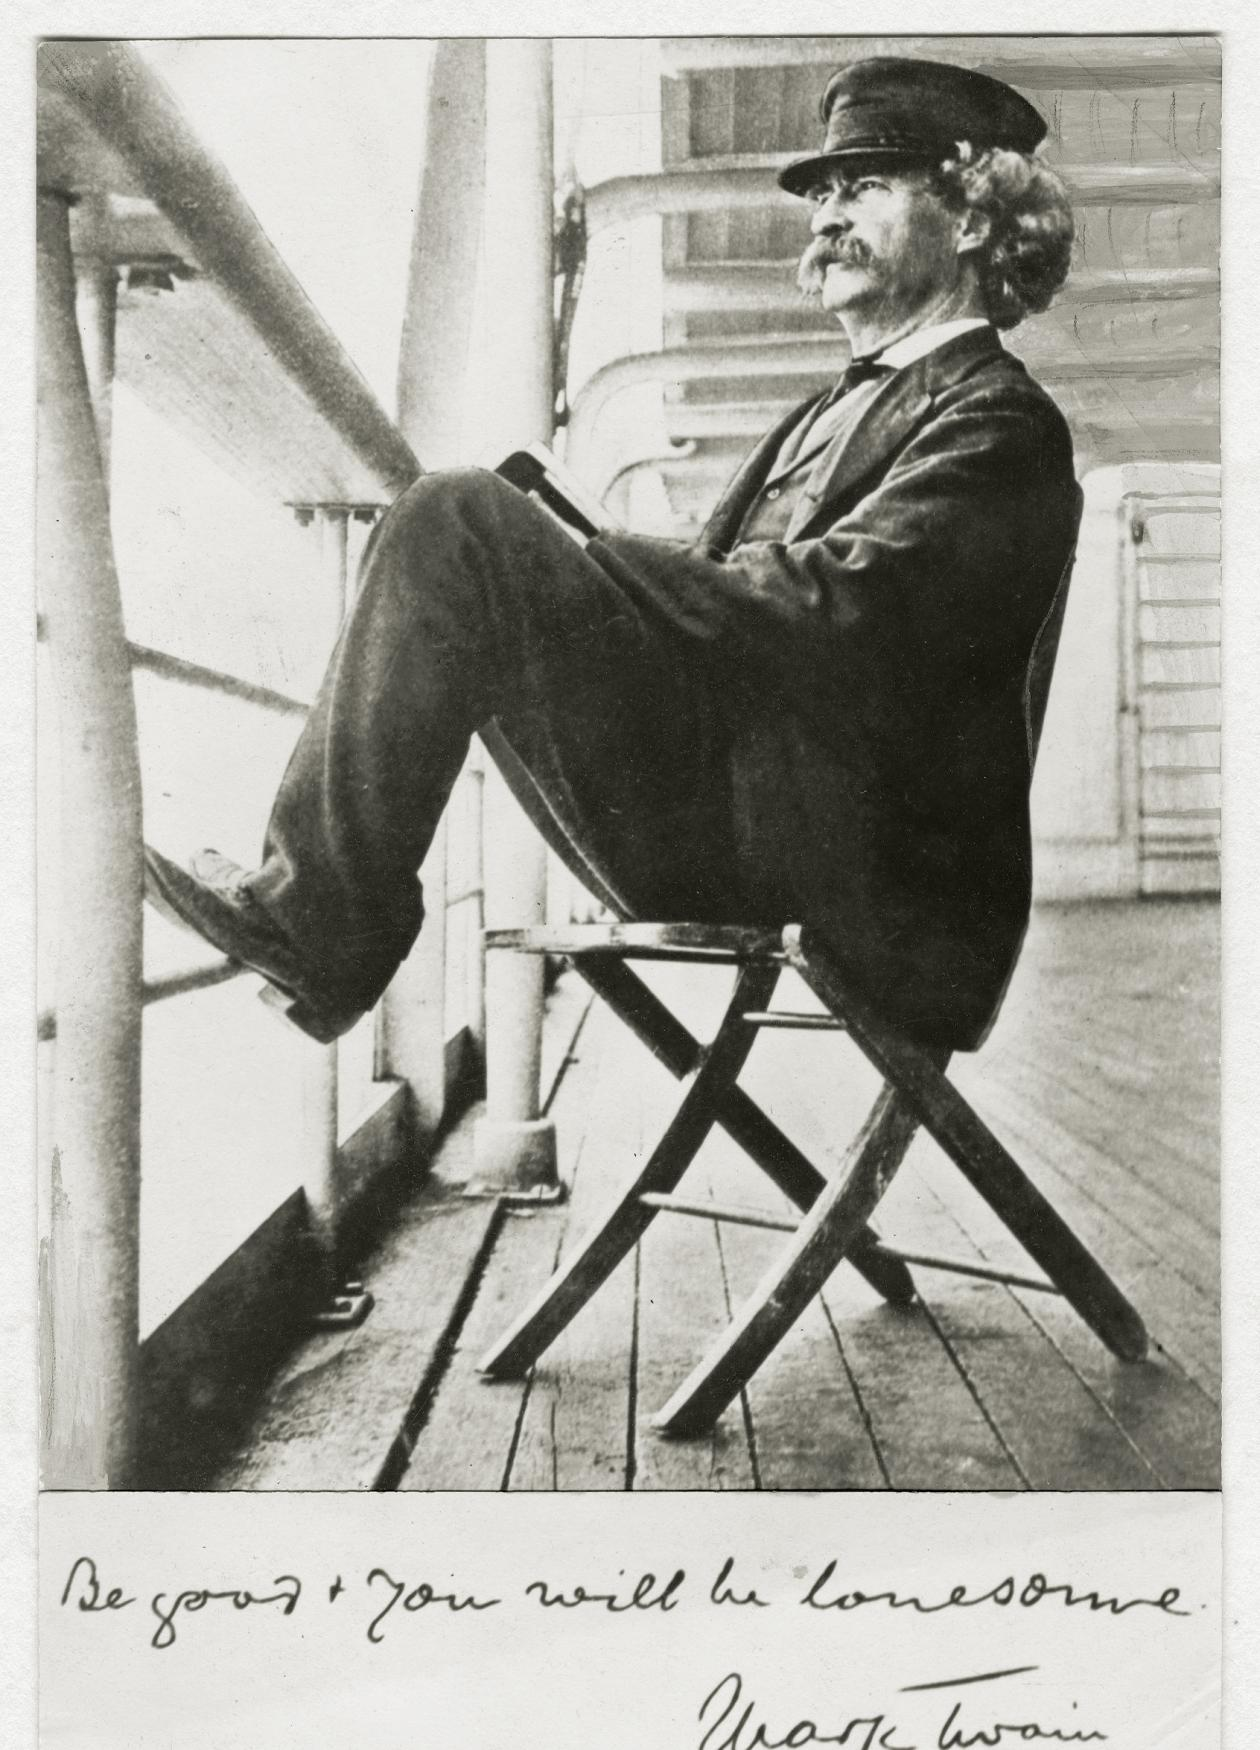 Black and white photo of Mark Twain sitting on a chair on the deck of a cruise ship.